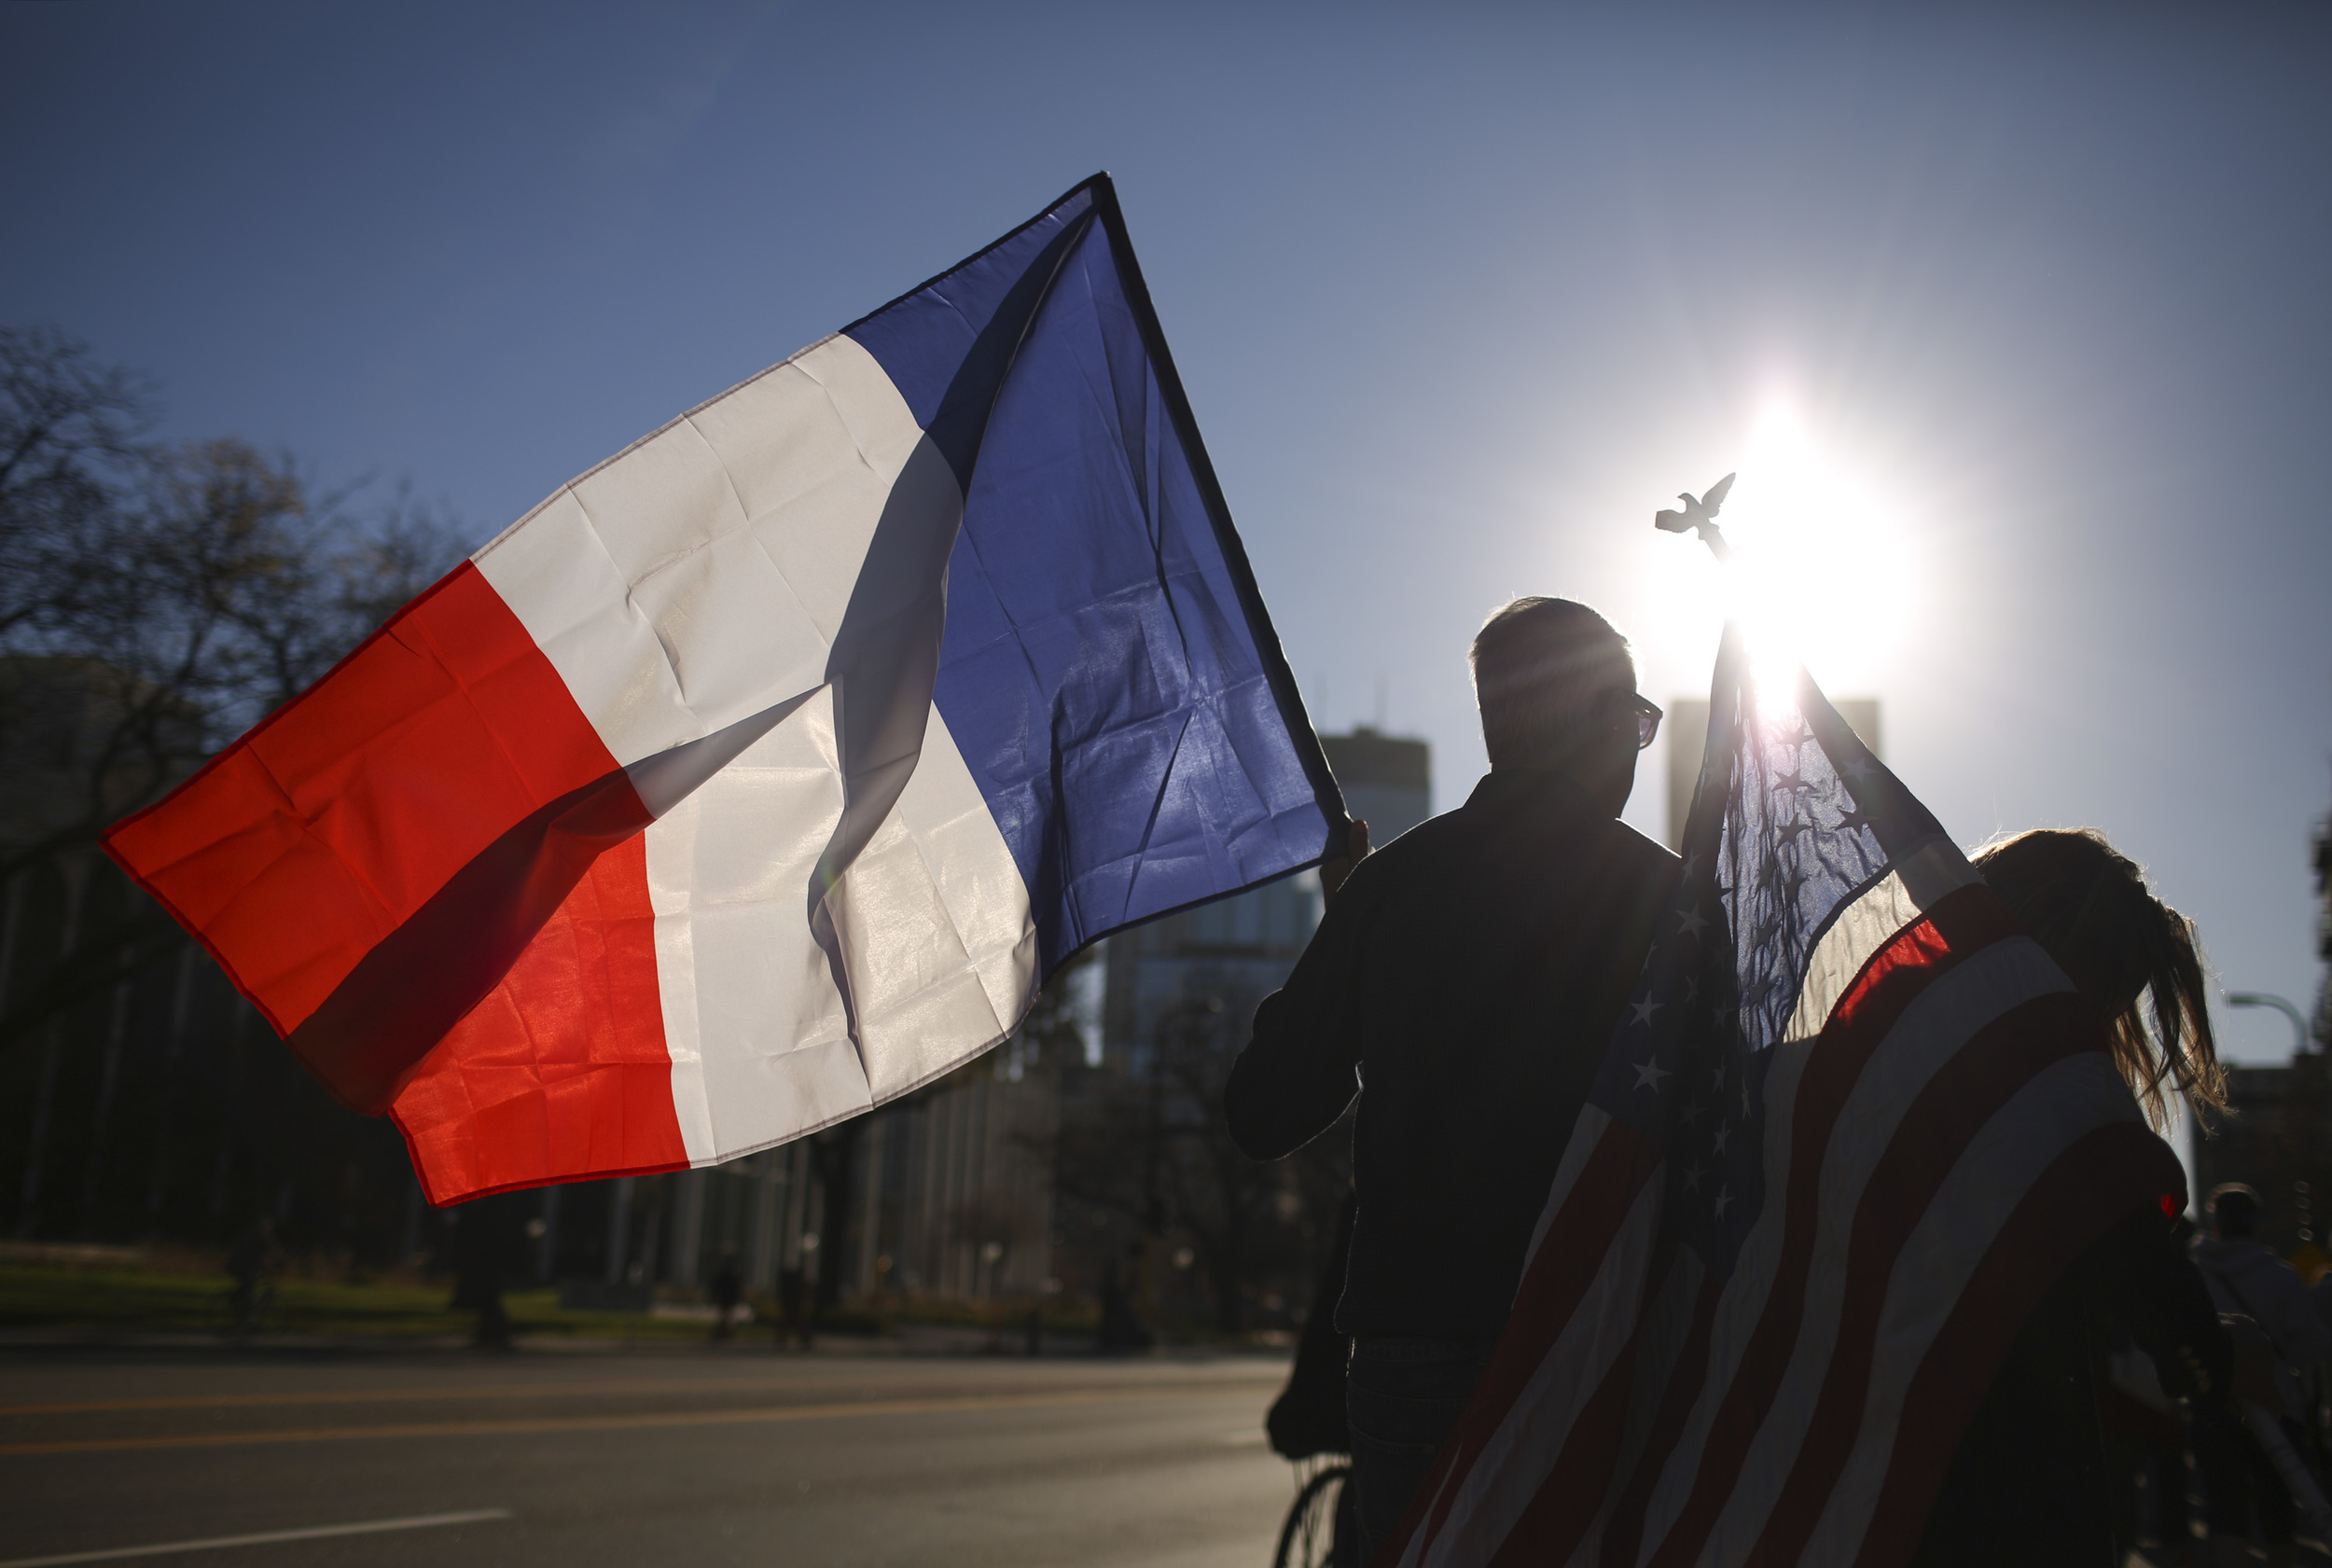 Joel and Sarah Quie carry American and French flags as they walk during a march in Minneapolis, Sunday, Nov. 15, 2015, to show solidarity with France after the deadly attacks in Paris on Friday. (Jeff Wheeler/Star Tribune via AP)